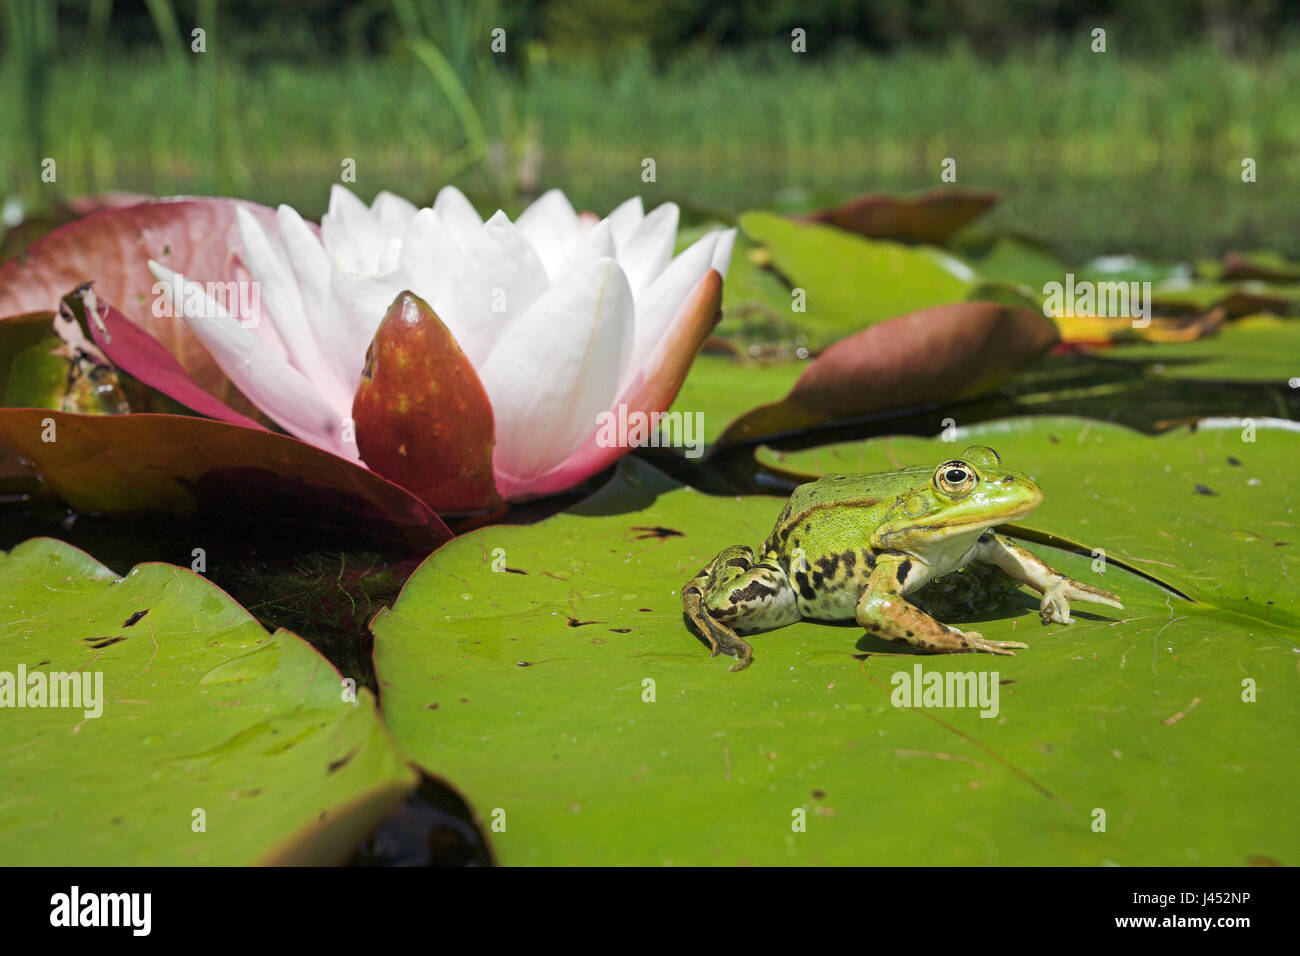 photo of an edible frog sitting on a leaf of european white waterlilly with a flower in the background - Stock Image